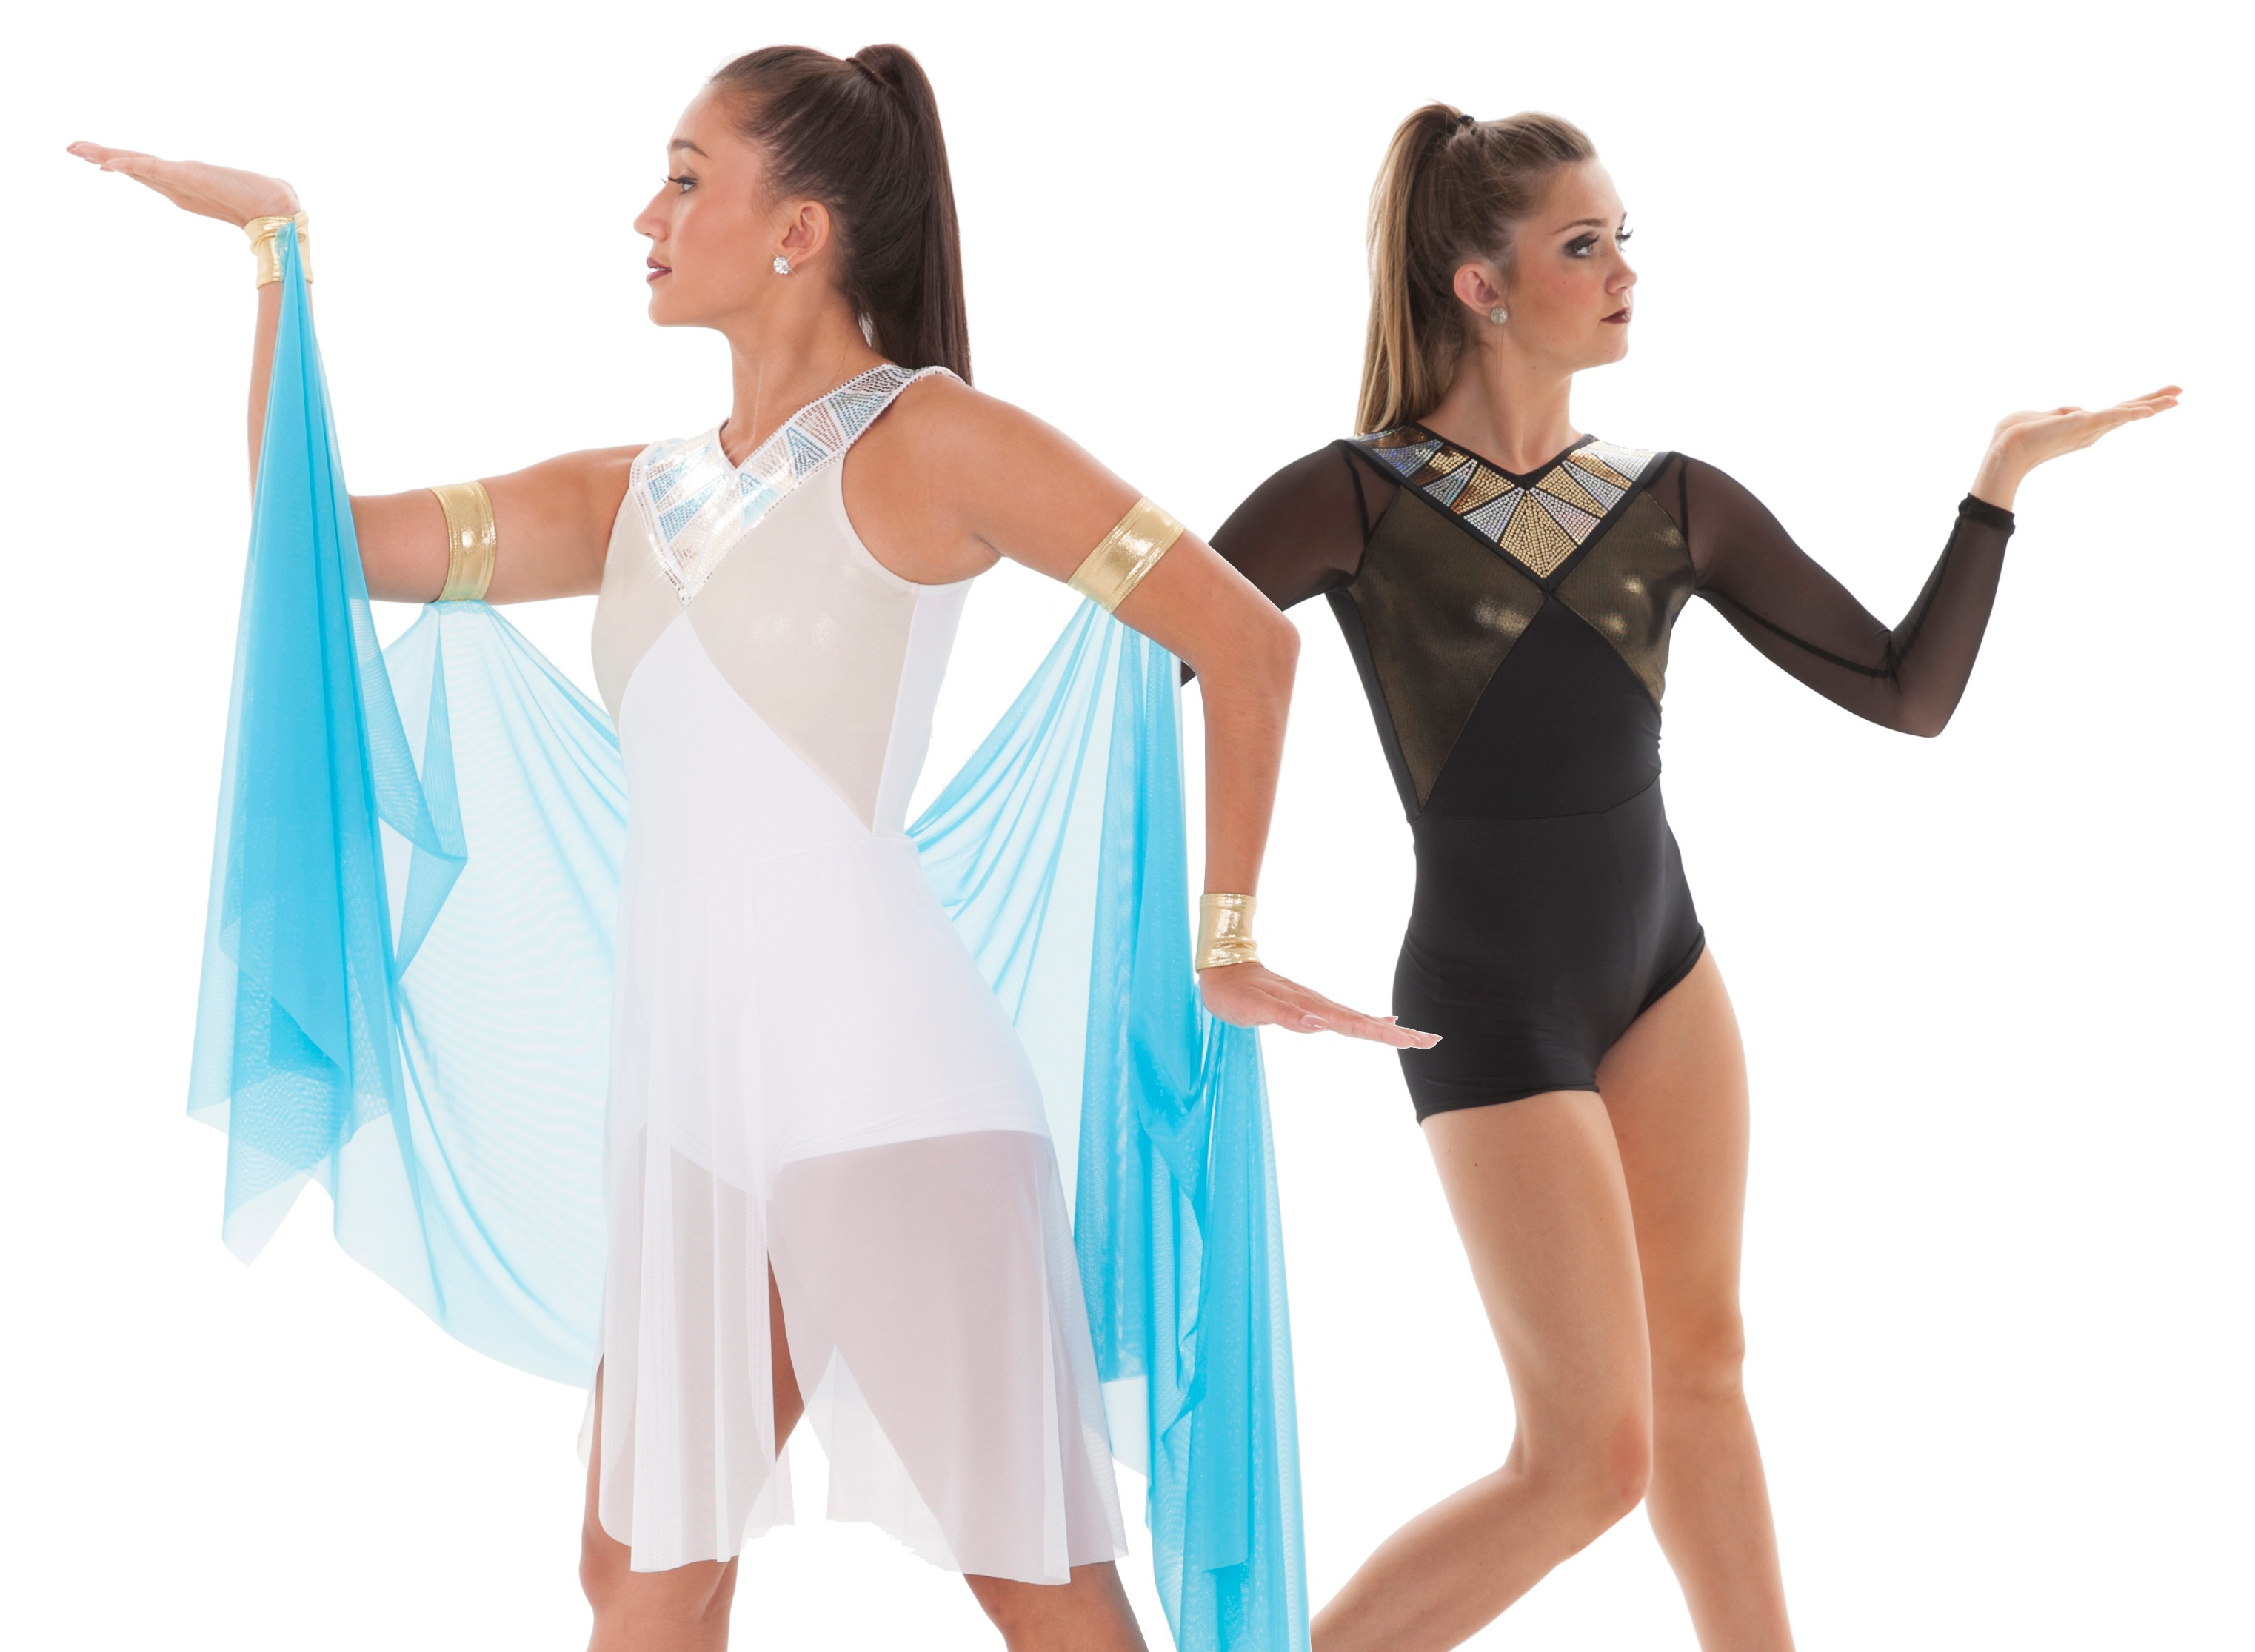 Cleopatra Themed Jazz Dance Costume